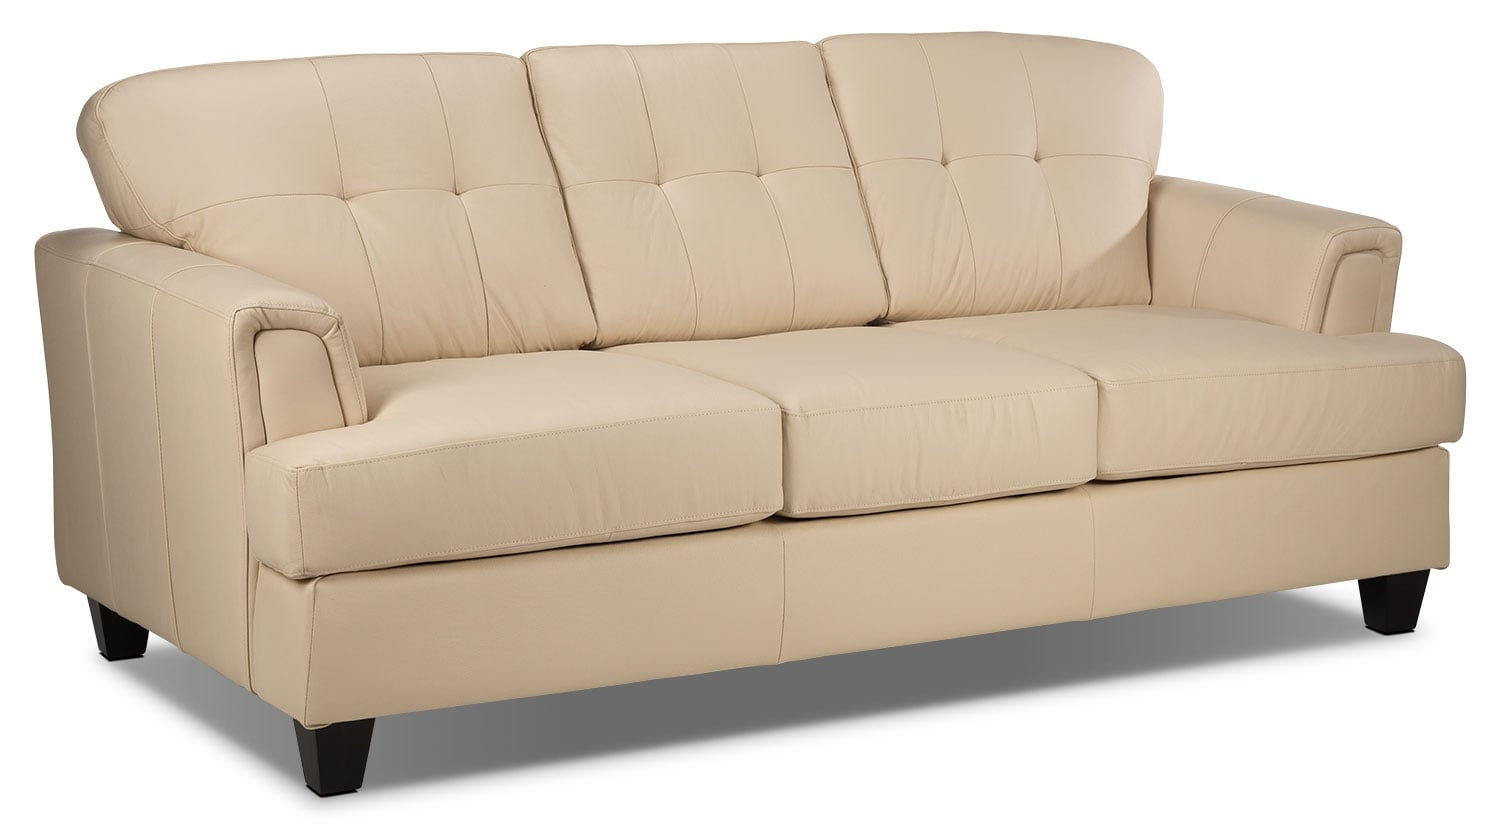 Spencer Sofa - Light Beige